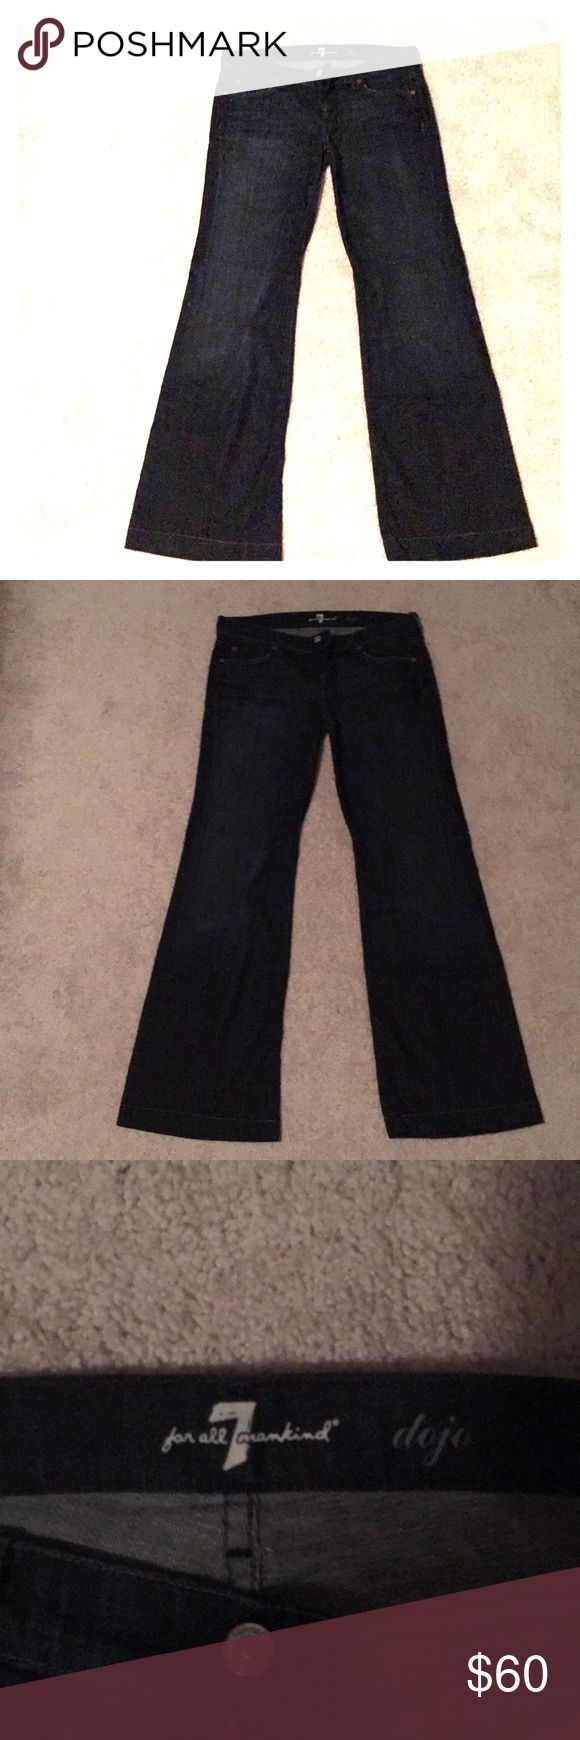 NWOT 7 for all man kind jeans 7 for all man kind wide leg jeans. Brand new, without tags. Great condition. Tore tags off when I brought them but I Never worn. Comes from a smoke and pet free home. 7 For All Mankind Pants Wide Leg